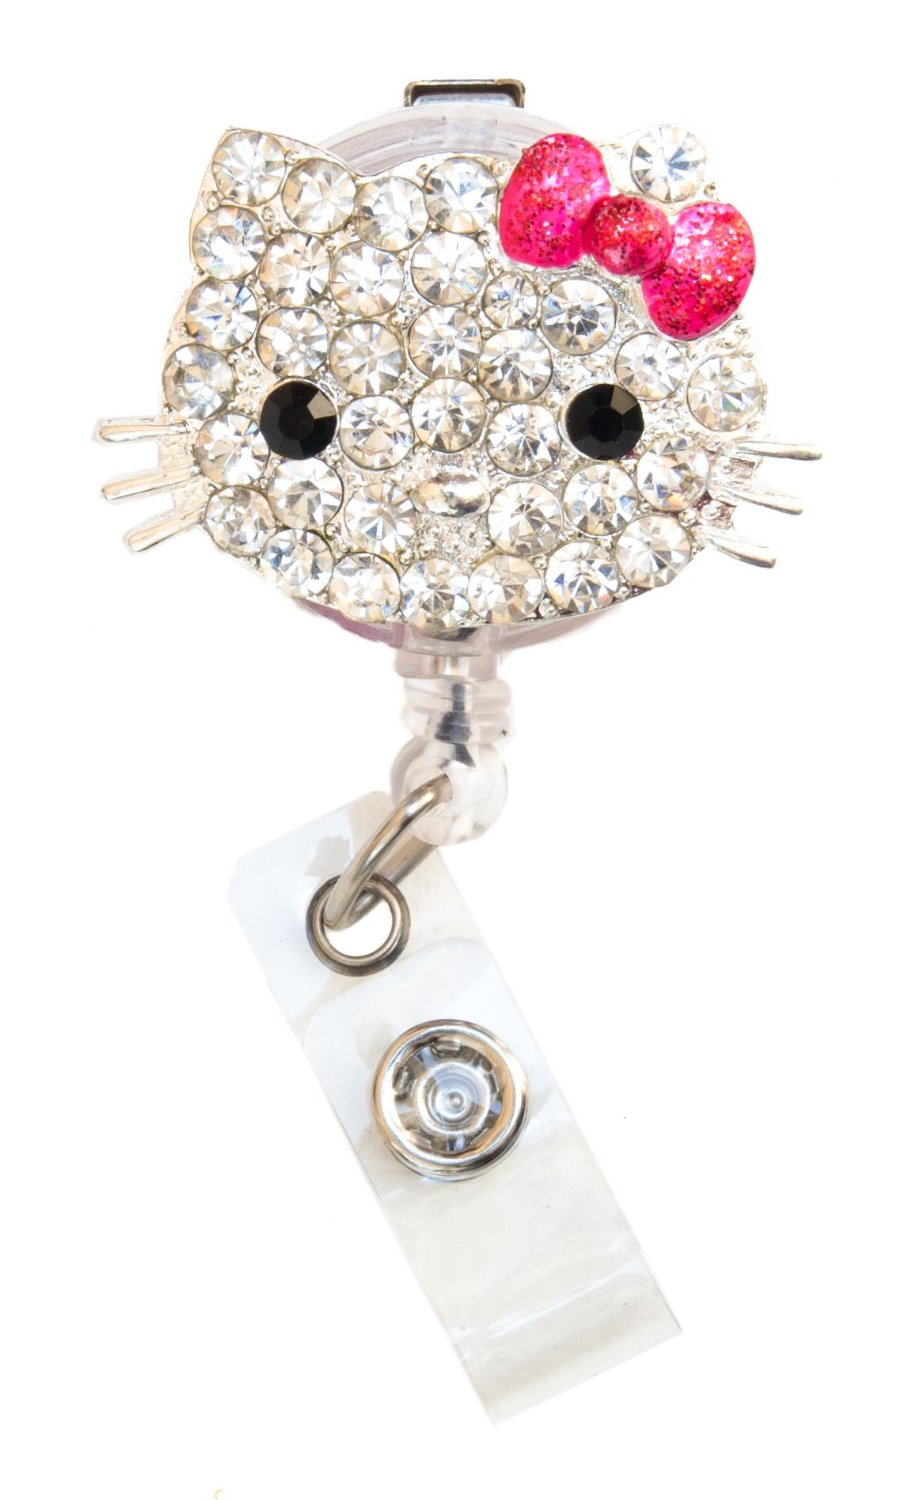 Sparkly Bling Nails: New Custom Bling Rhinestone 3D Hello Kitty Head W/ Sparkly